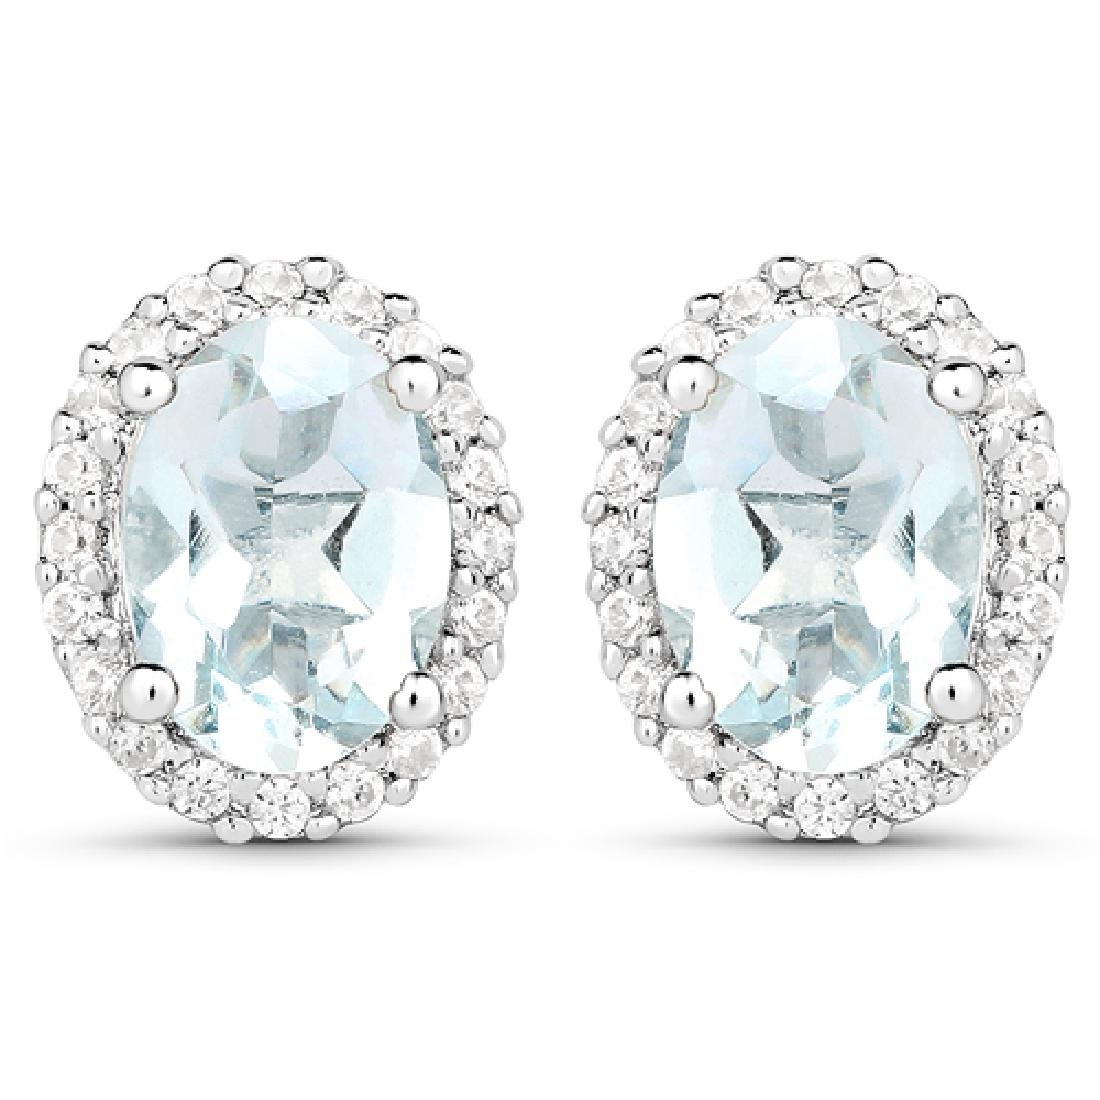 1.50 CTW Genuine Aquamarine & White Zircon .925